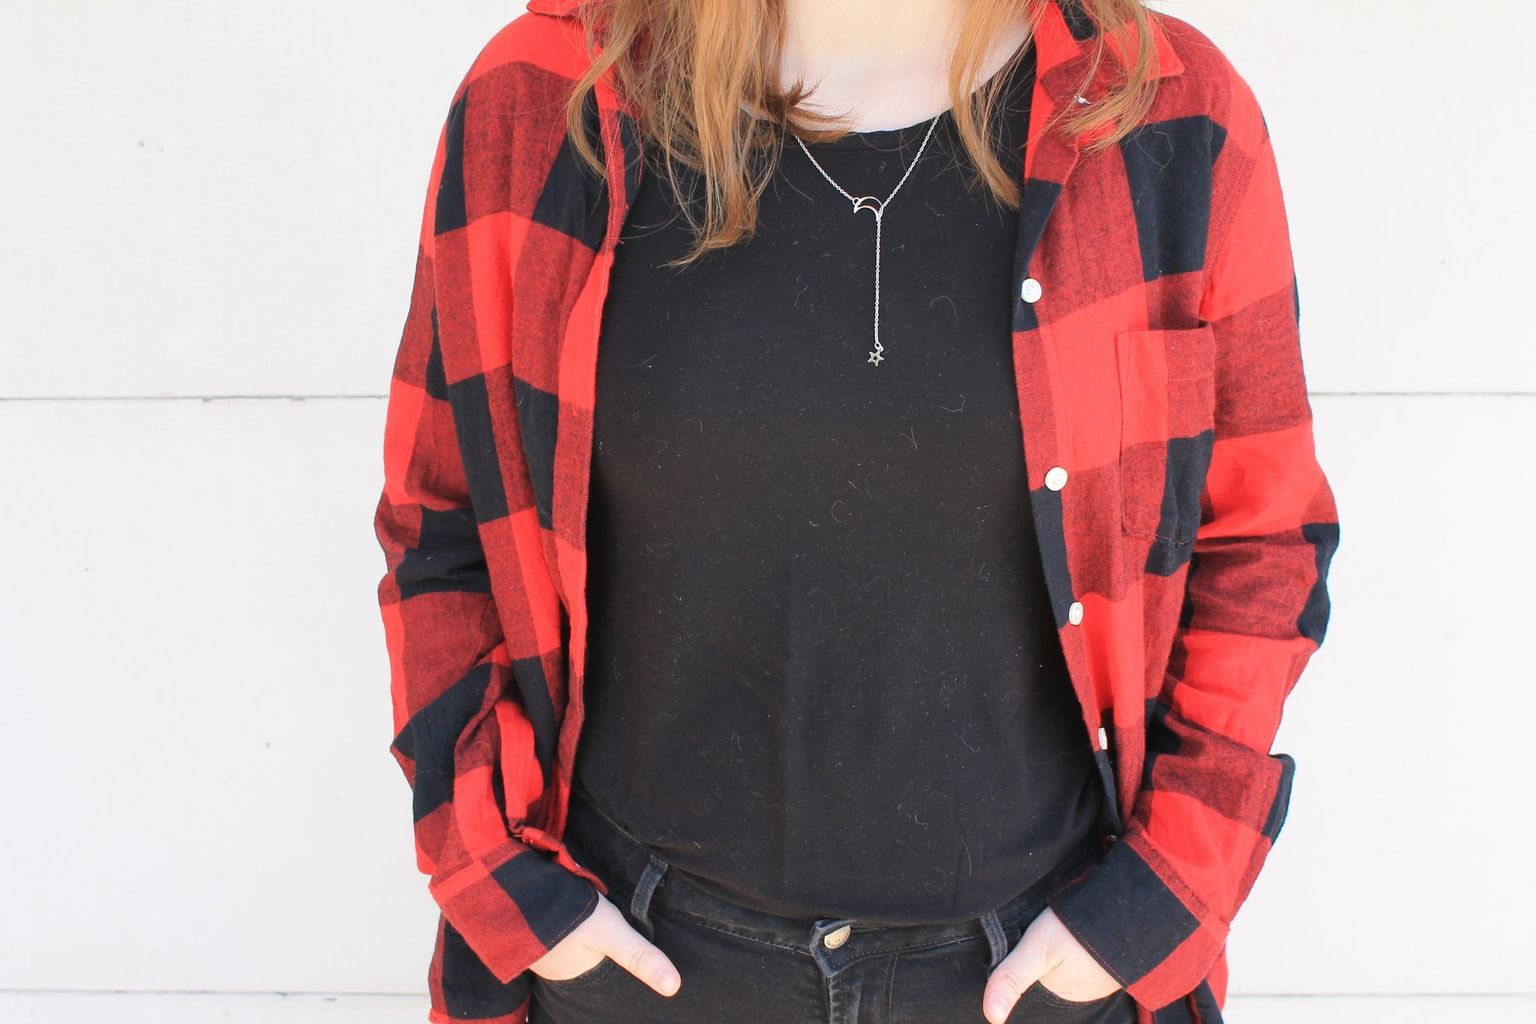 This Grand Valley State University student pairs her oversized red and black flannel with a casual black tee shirt.